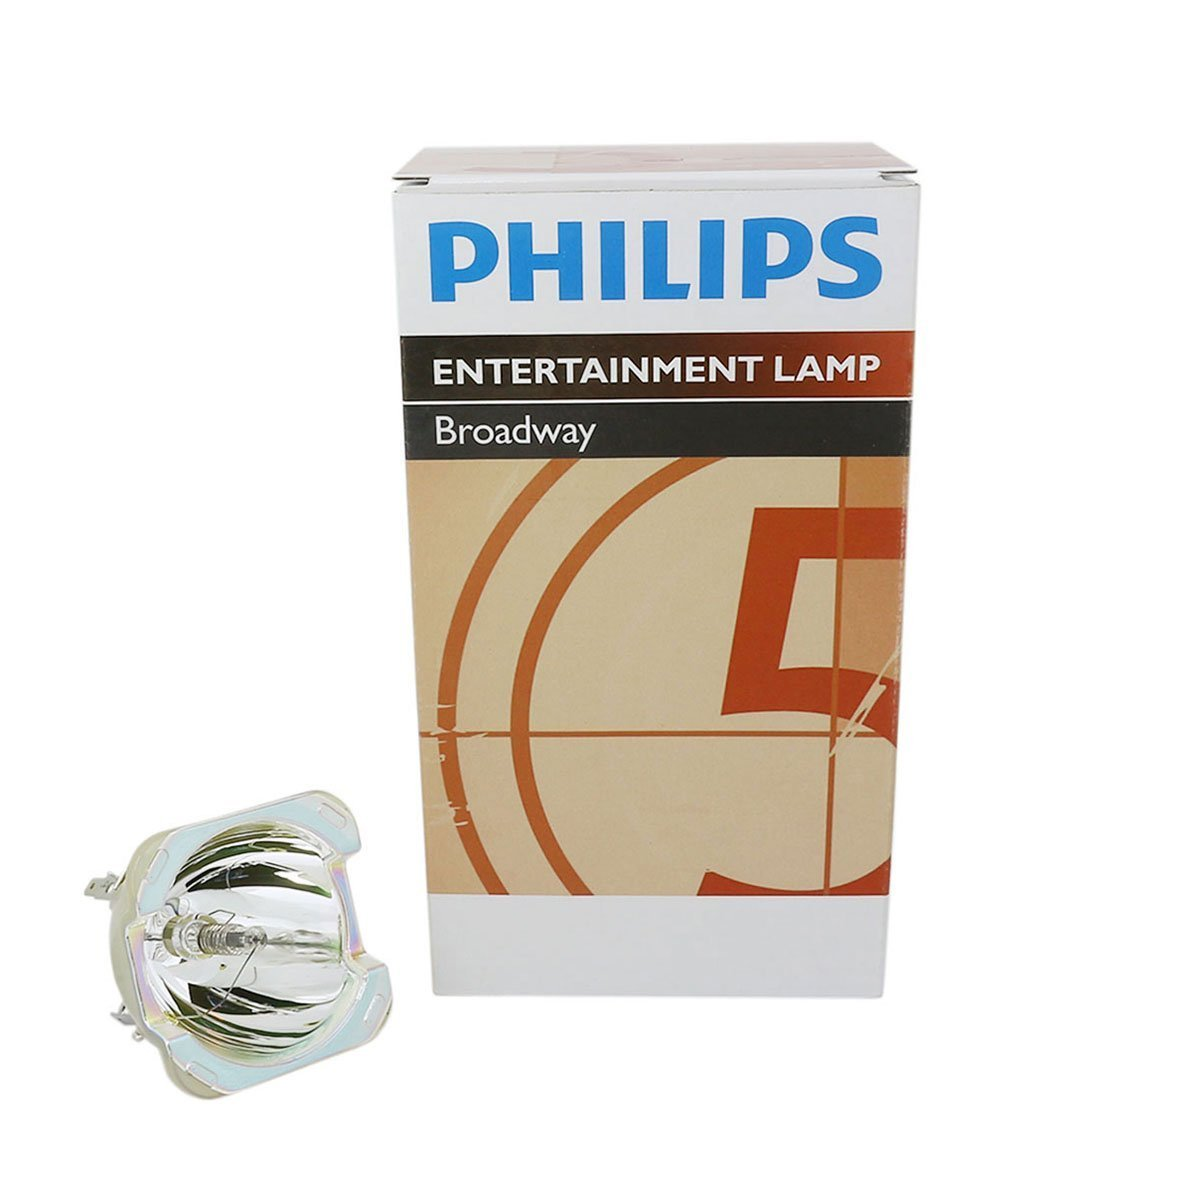 Philips MSD Platinum 15 R 300W 1.3 AC Lamp for Touring/Stage Lighting